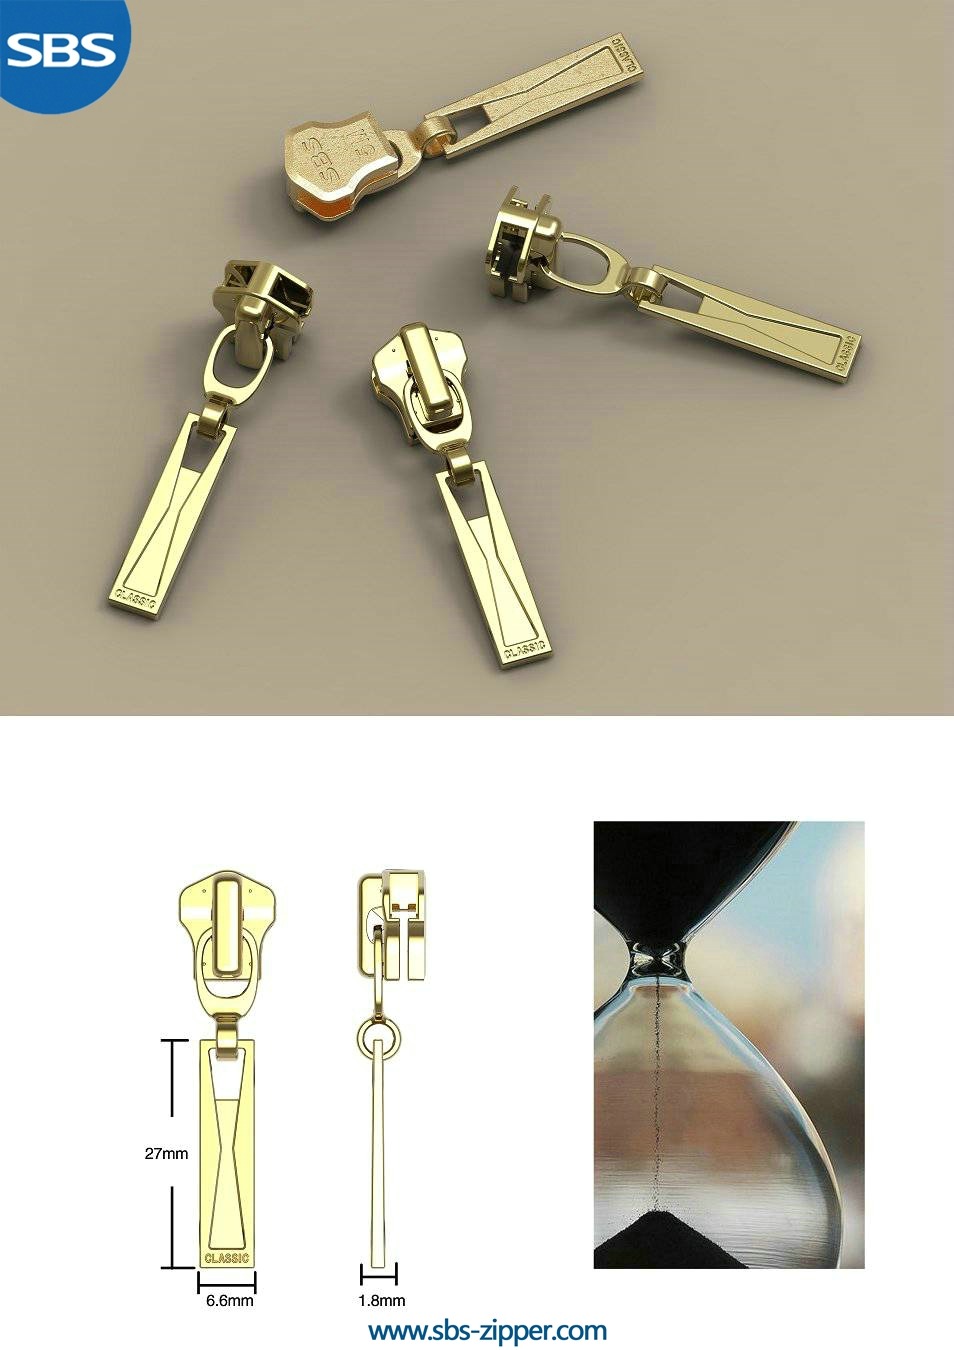 Zipper Pulls For Jacket Supplier 16ASB019 | SBS Zipper